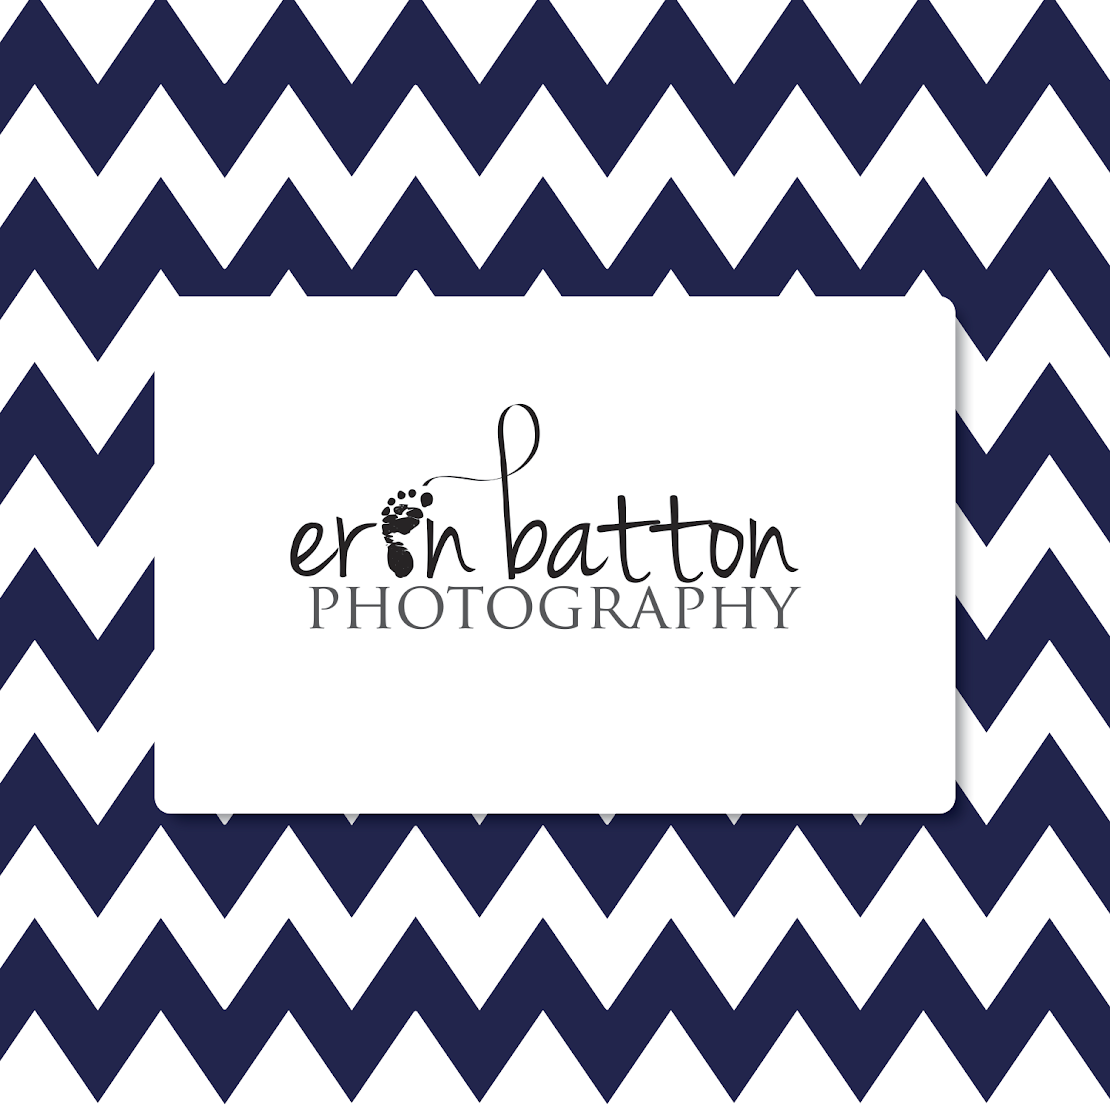 erin batton photography